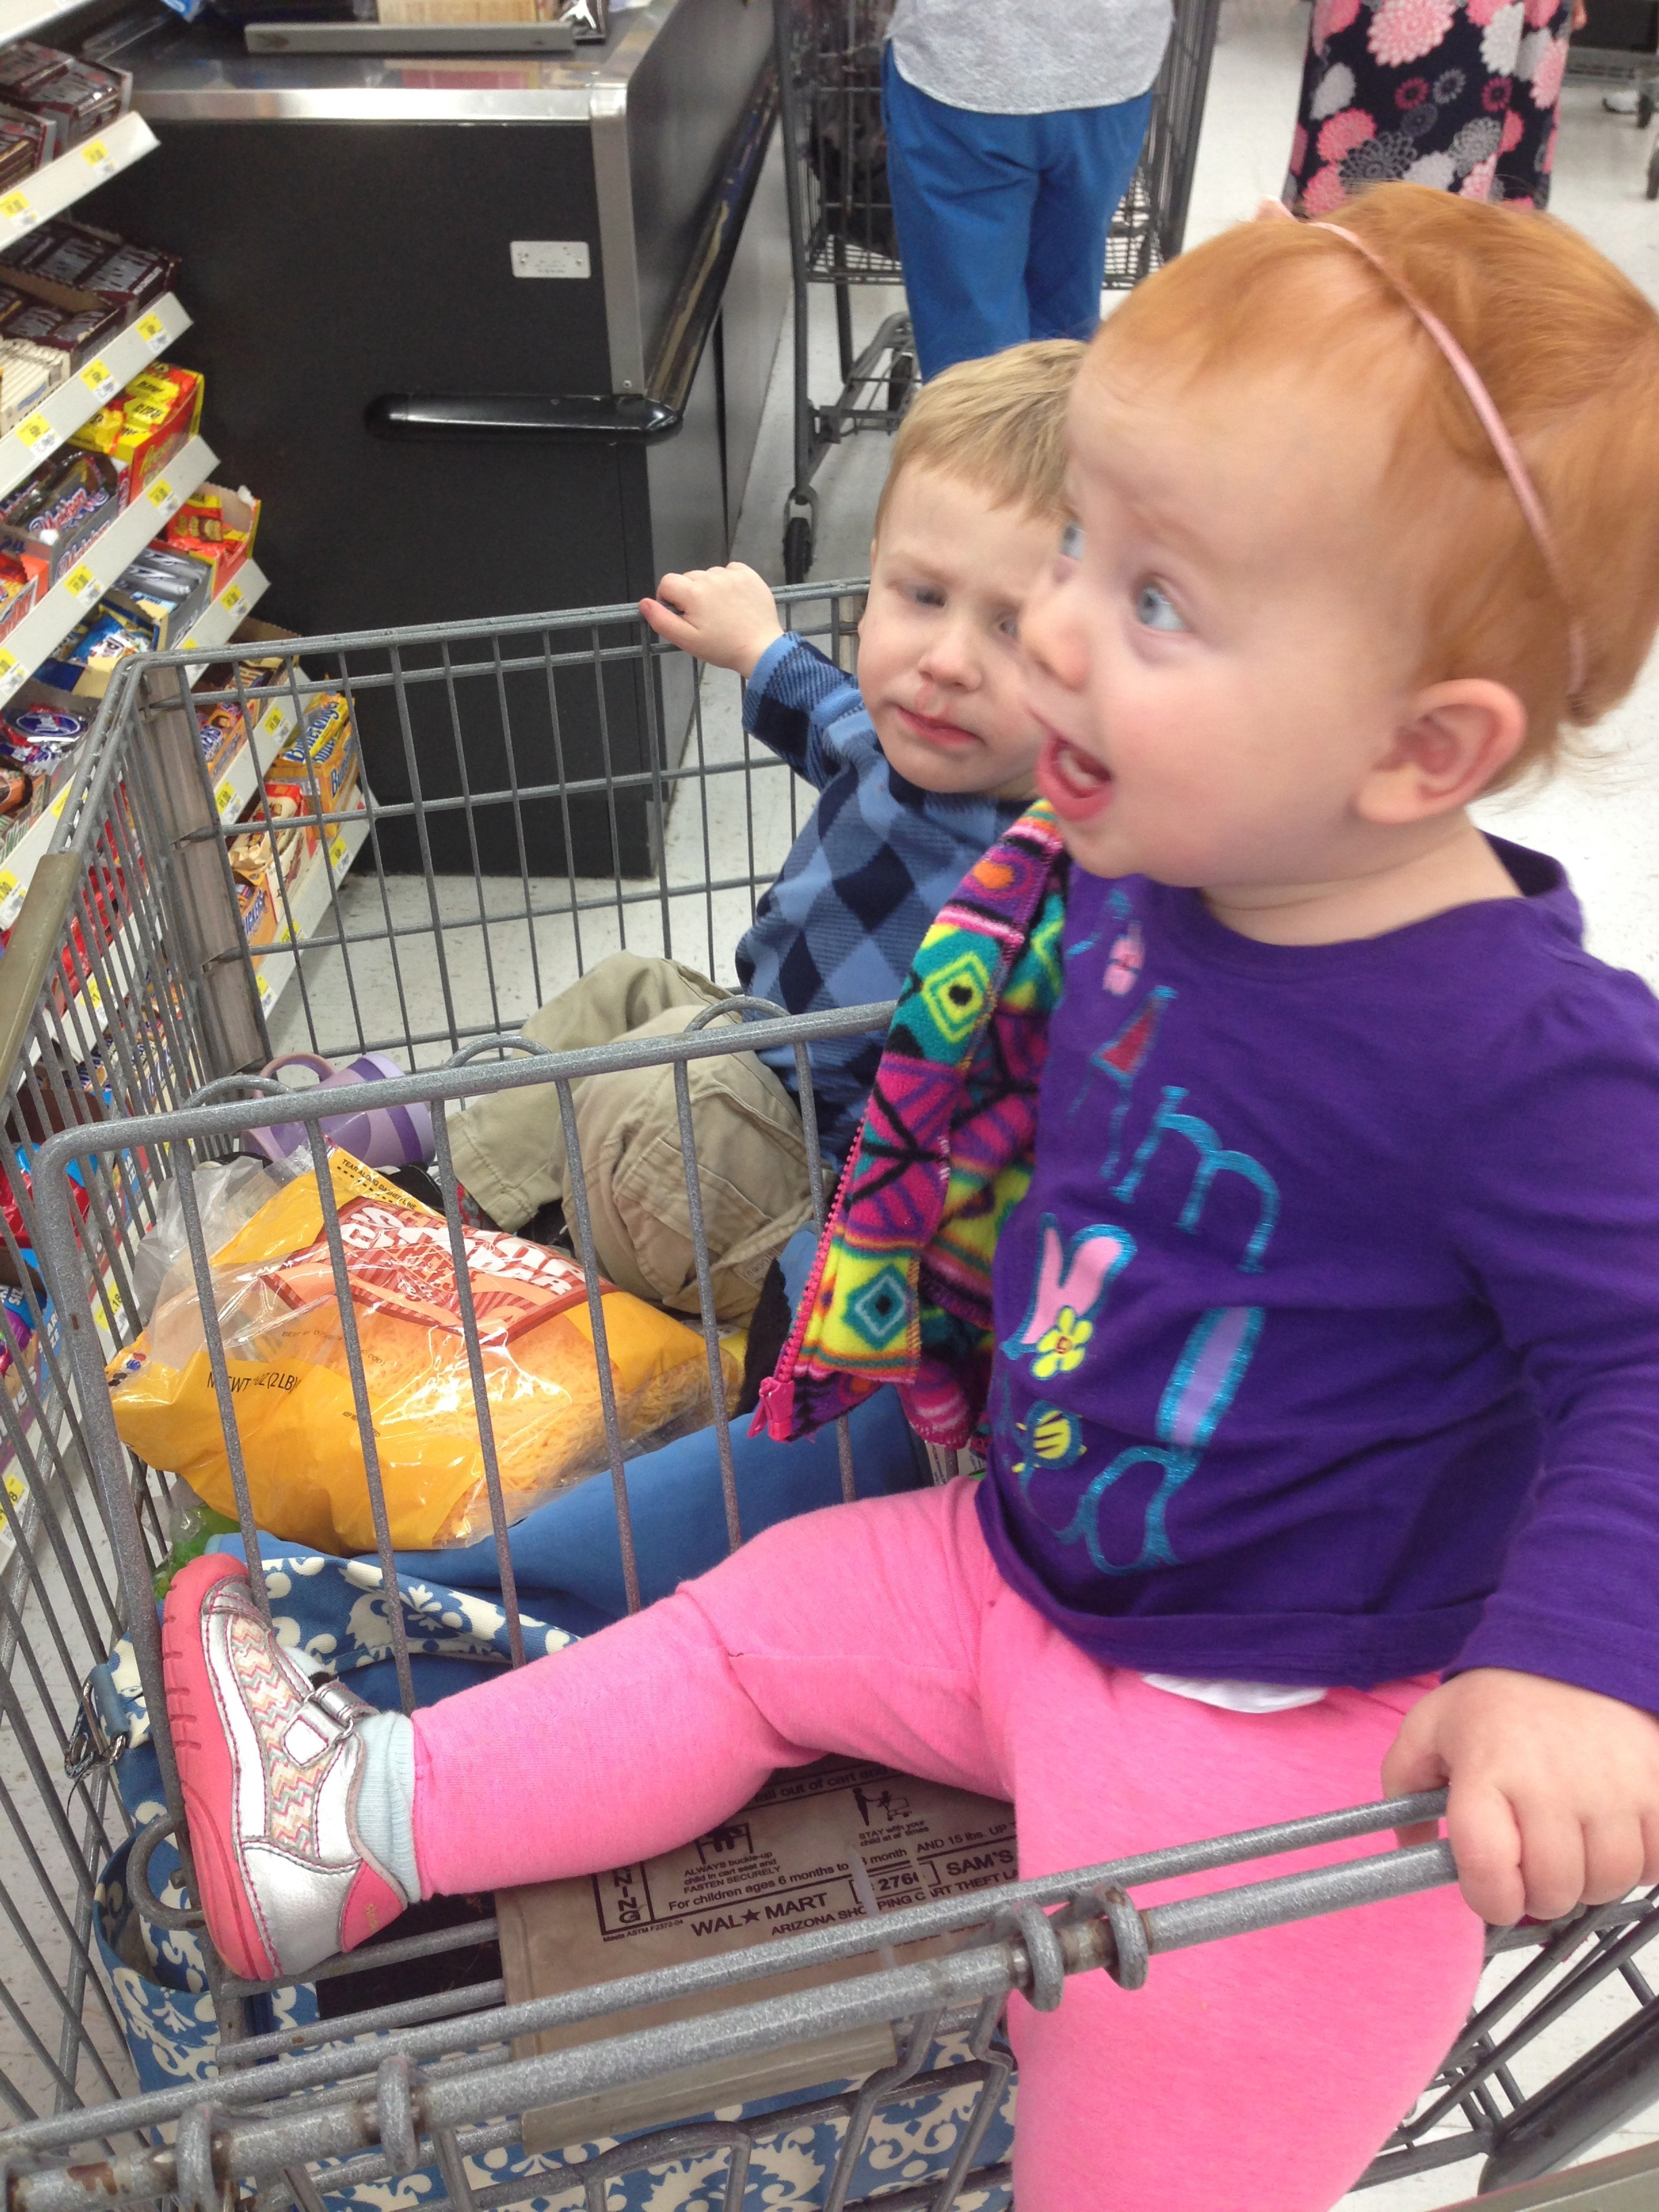 Camille was excited too - but she just loves shopping and eating. So, it's a win-win.